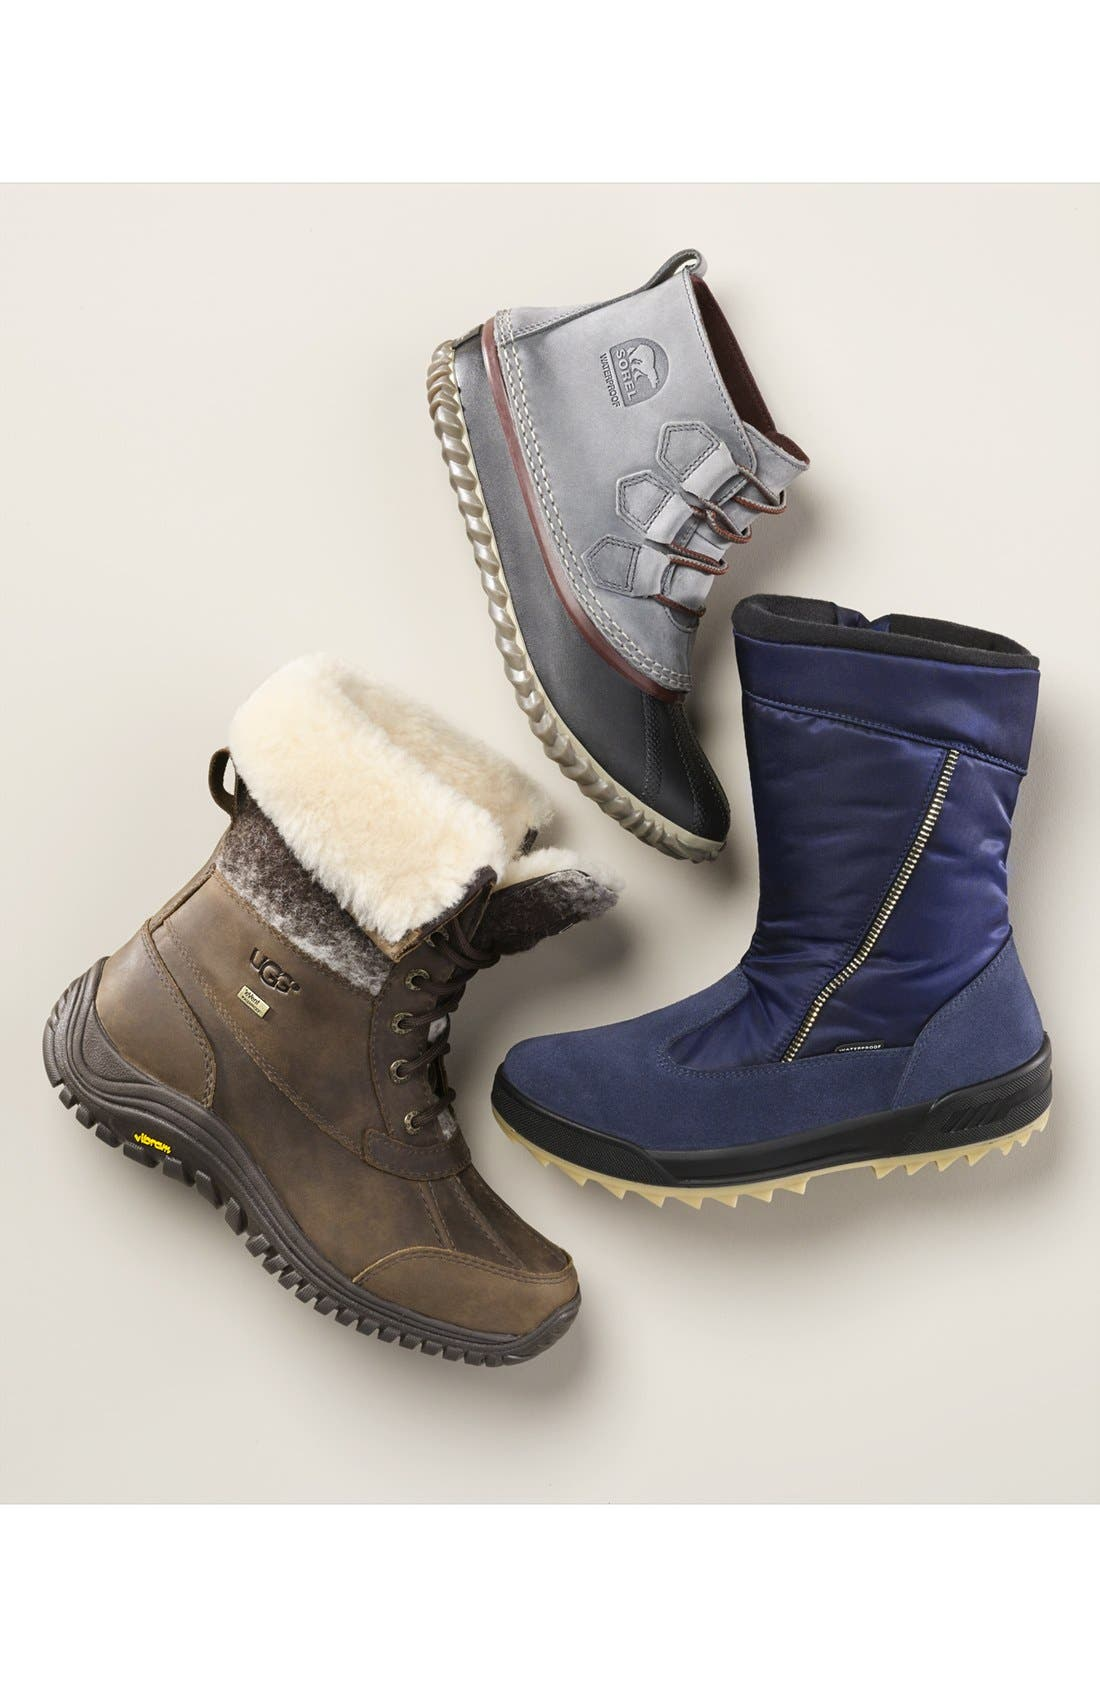 Iceland Waterproof Snow Boot,                             Alternate thumbnail 2, color,